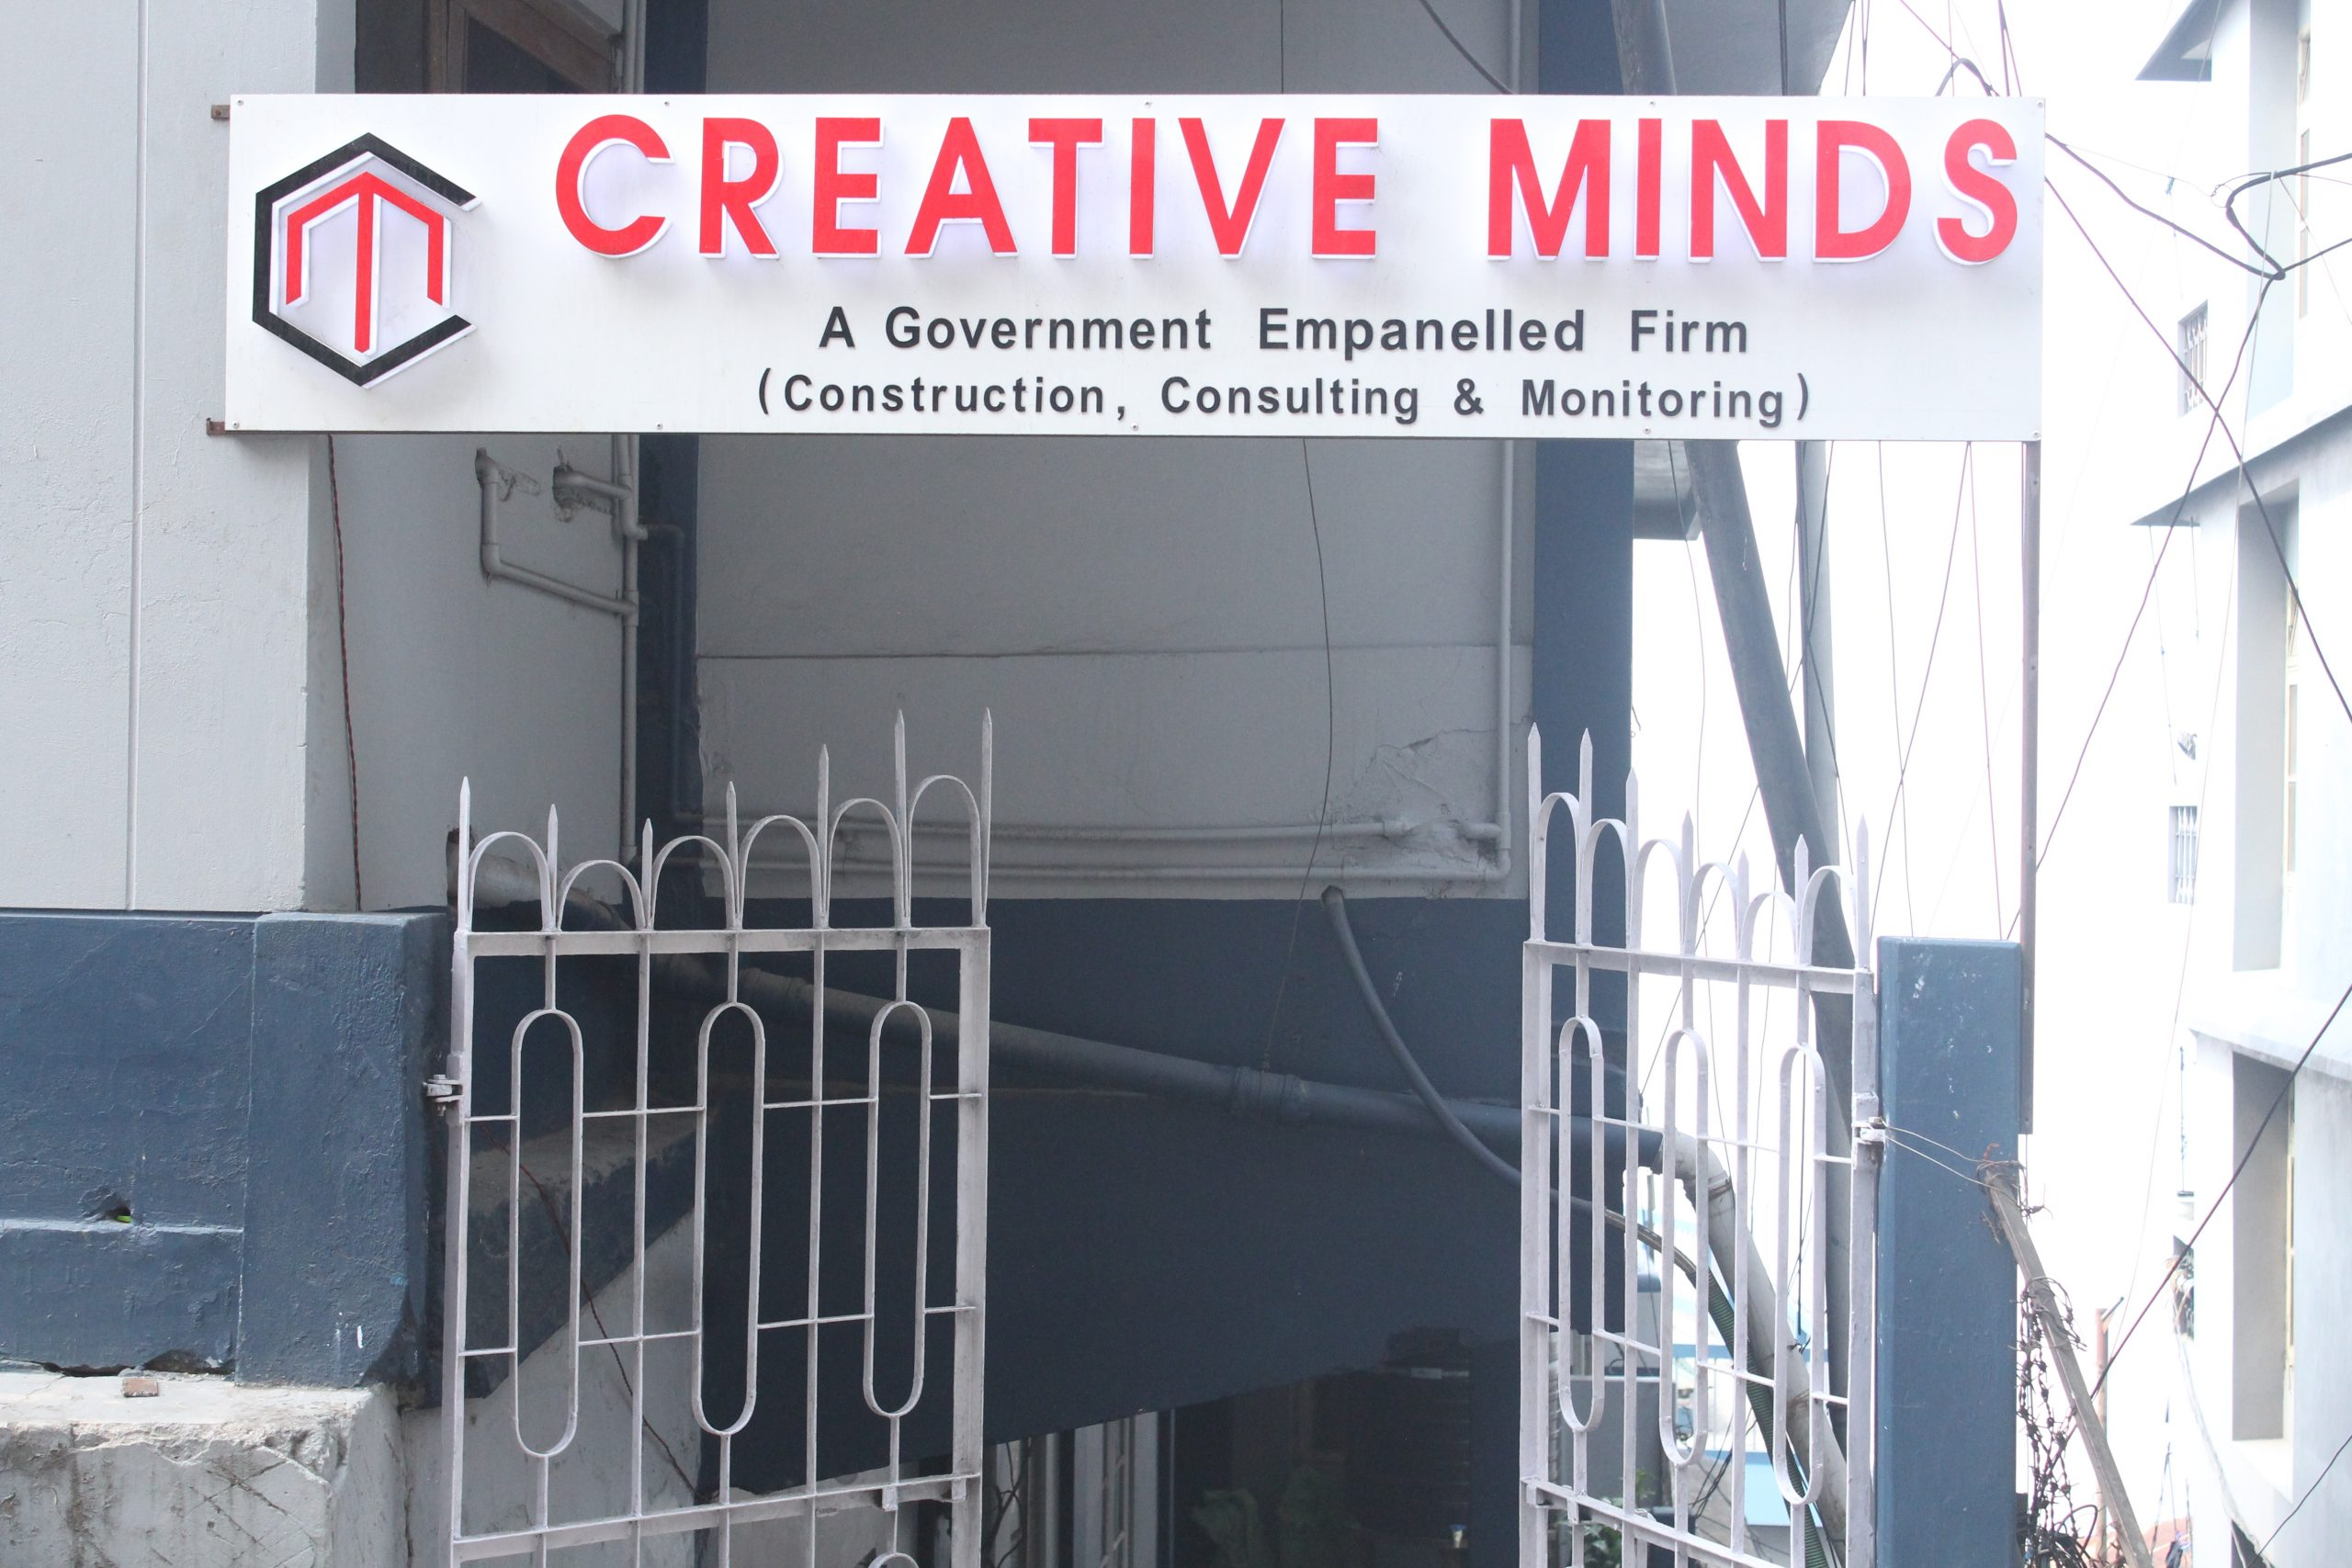 CREATIVE MINDS (Consultancy, Construction and Monitoring Services)